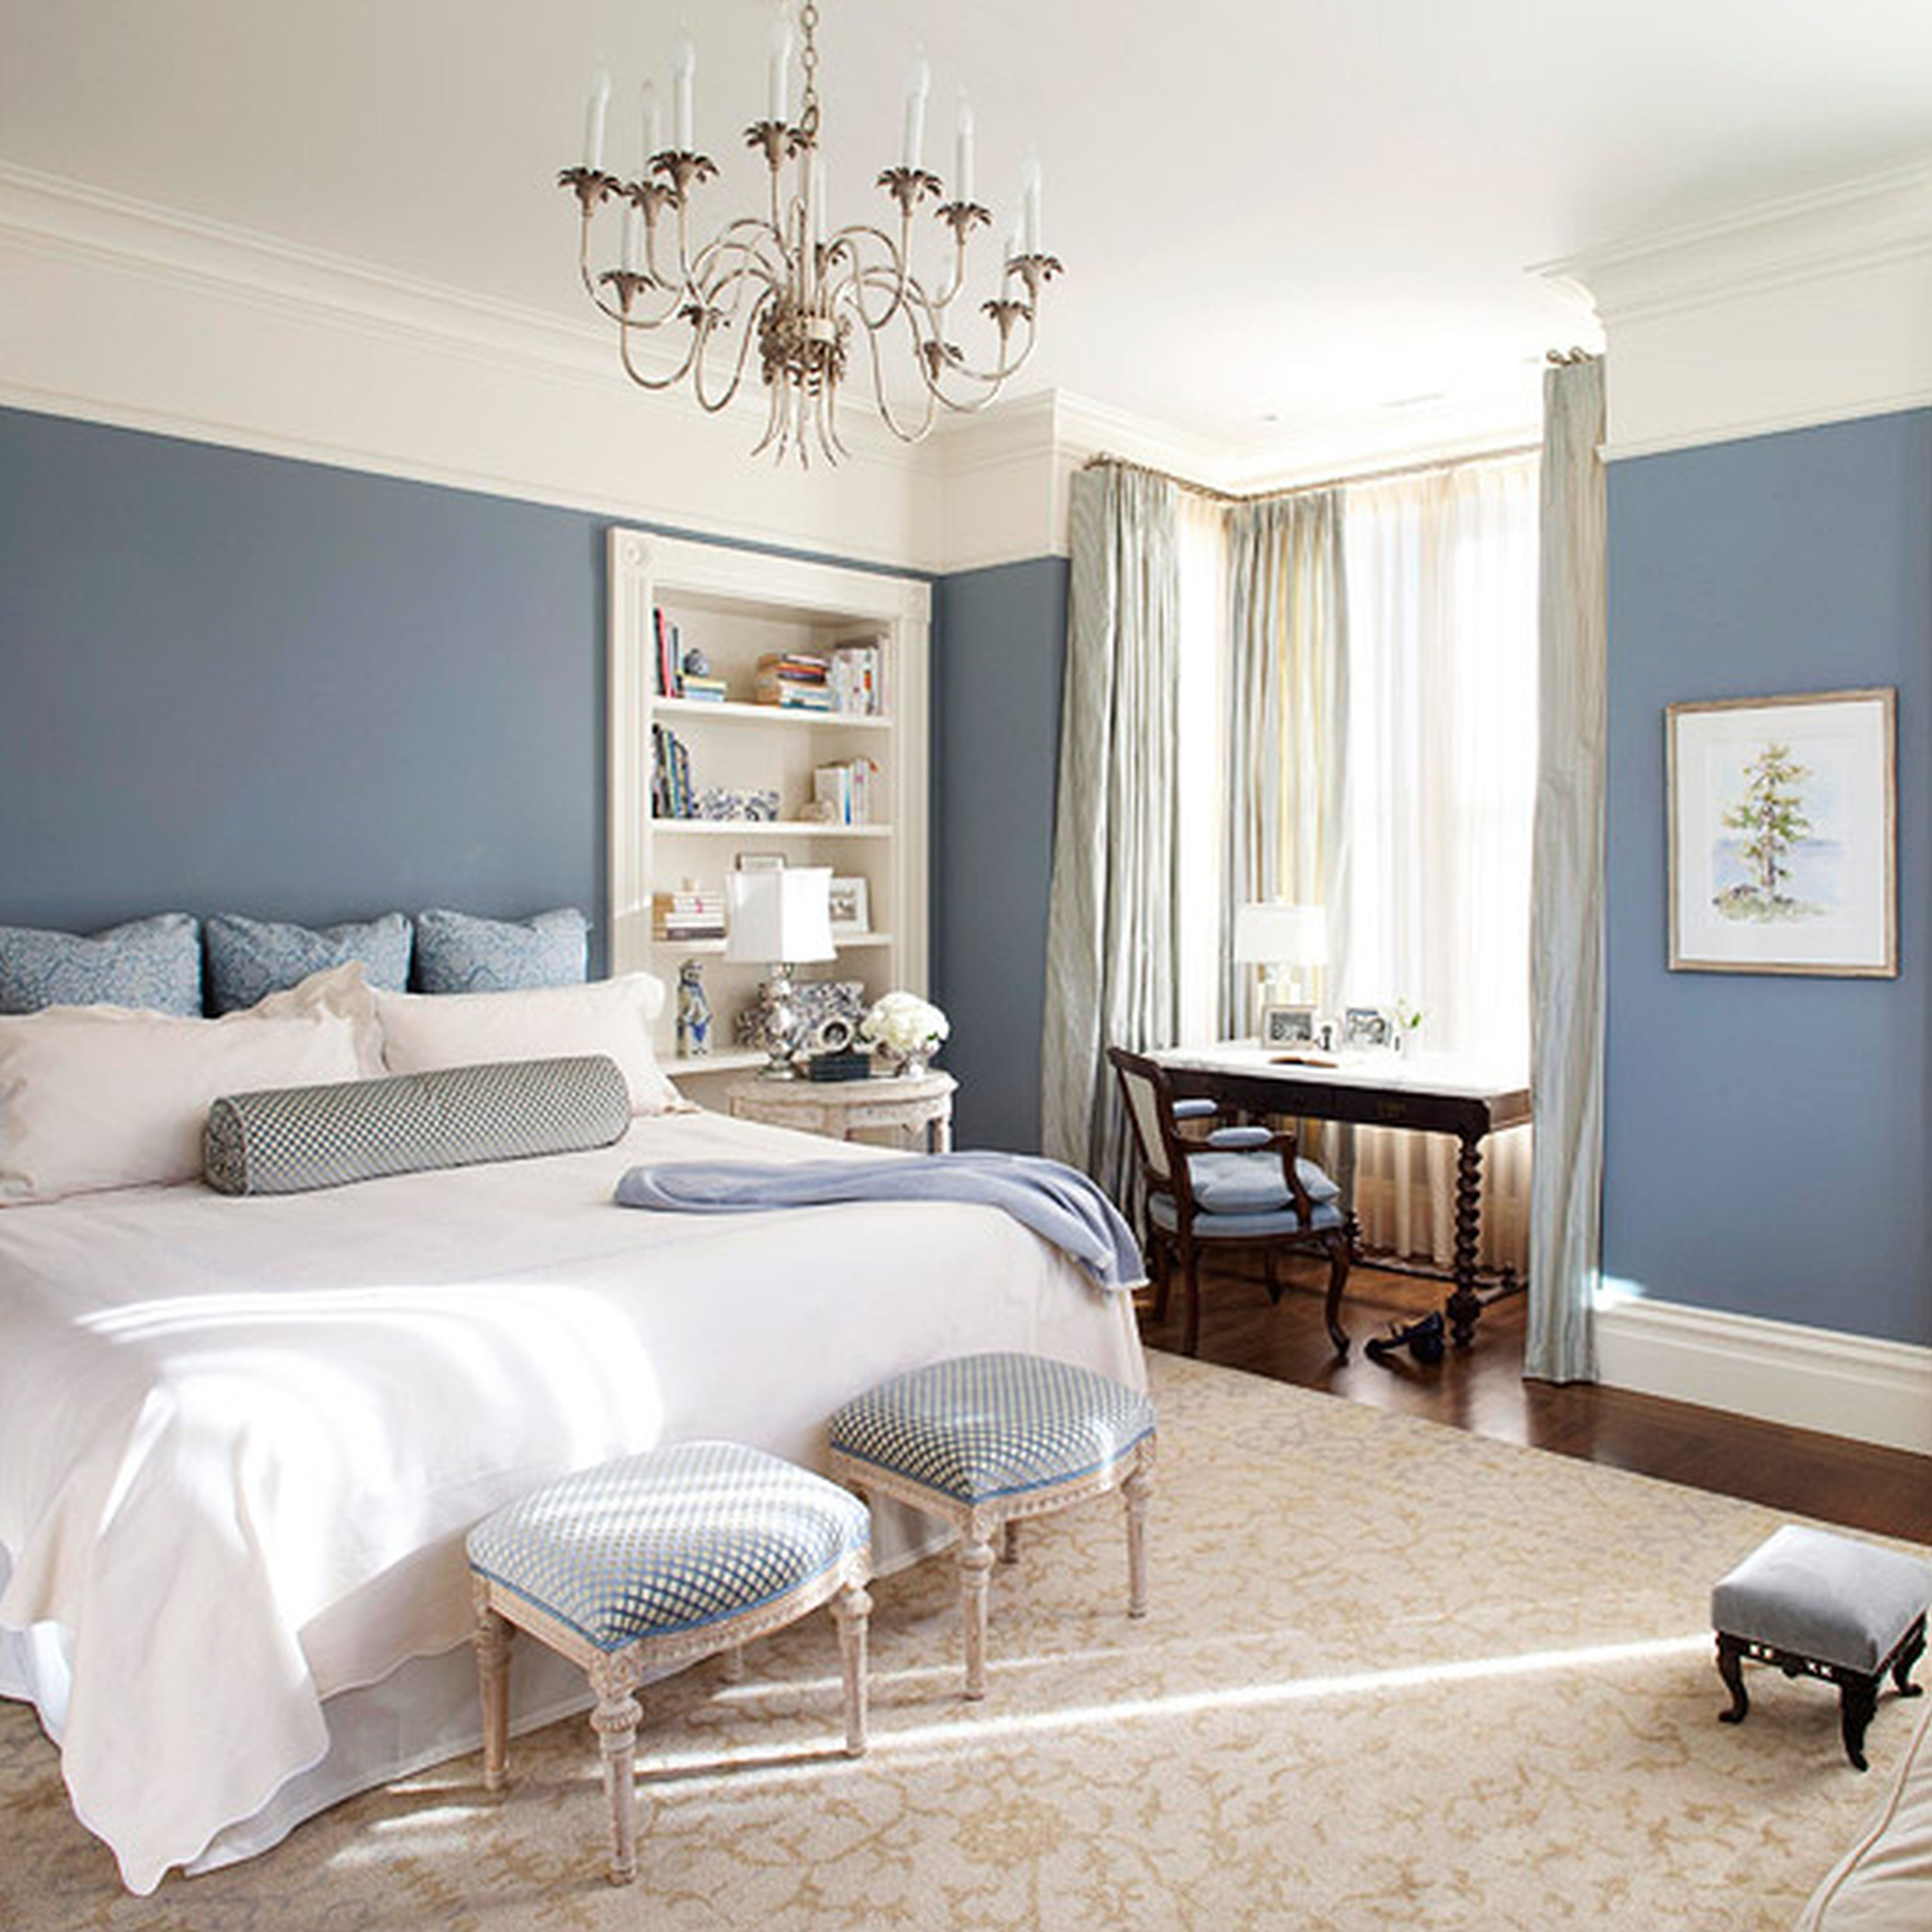 Fascinating Scandinavian Style Bedroom Design Inspirations Awesome Scandinavian Bedroom Design with Charming Chandelier and Beautiful White Bookcase also